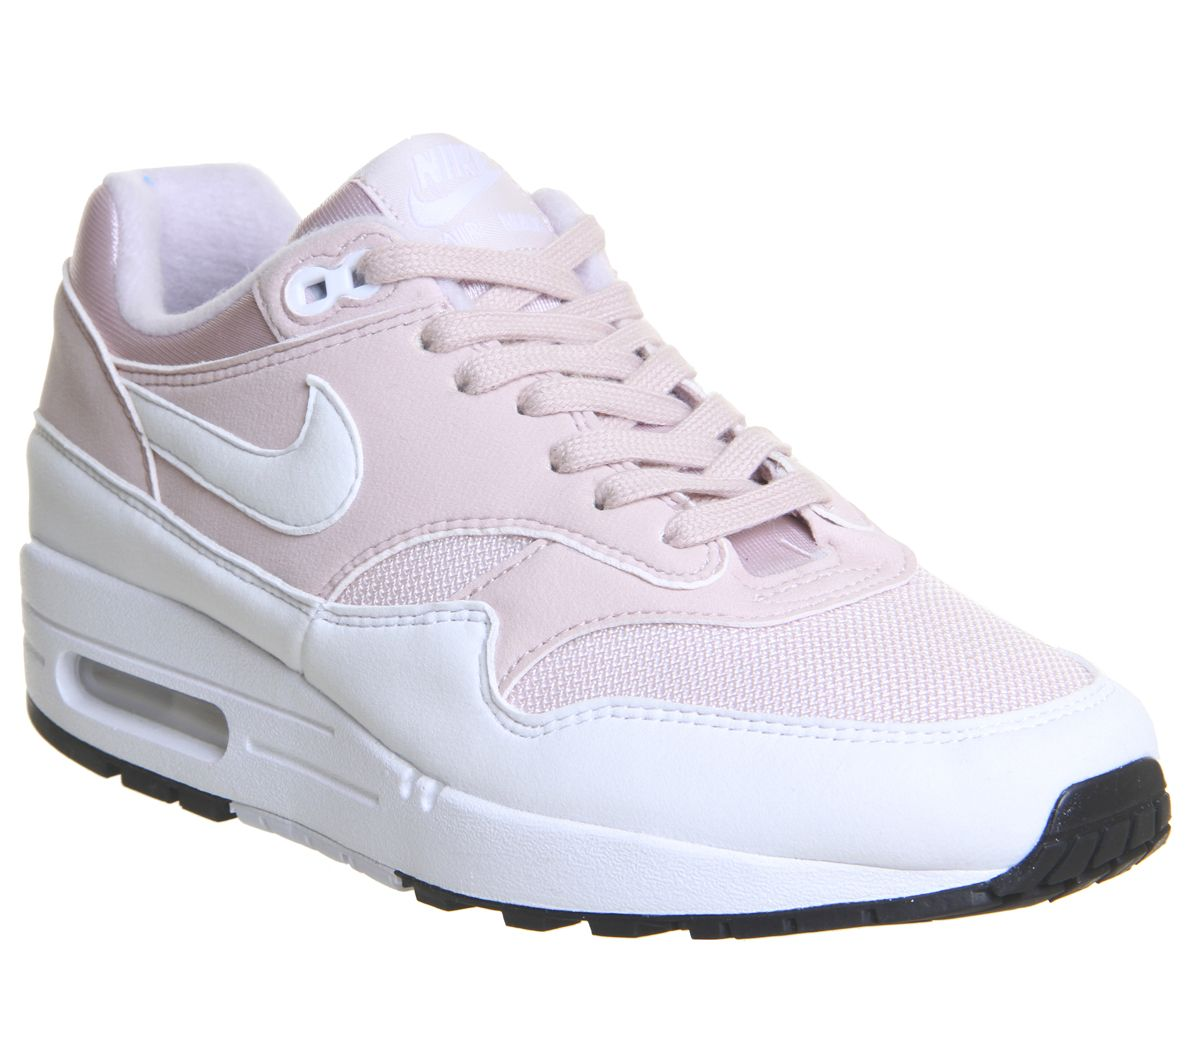 buy online bdb52 15674 Nike Air Max 1 Trainers Barely Rose White F - Hers trainers